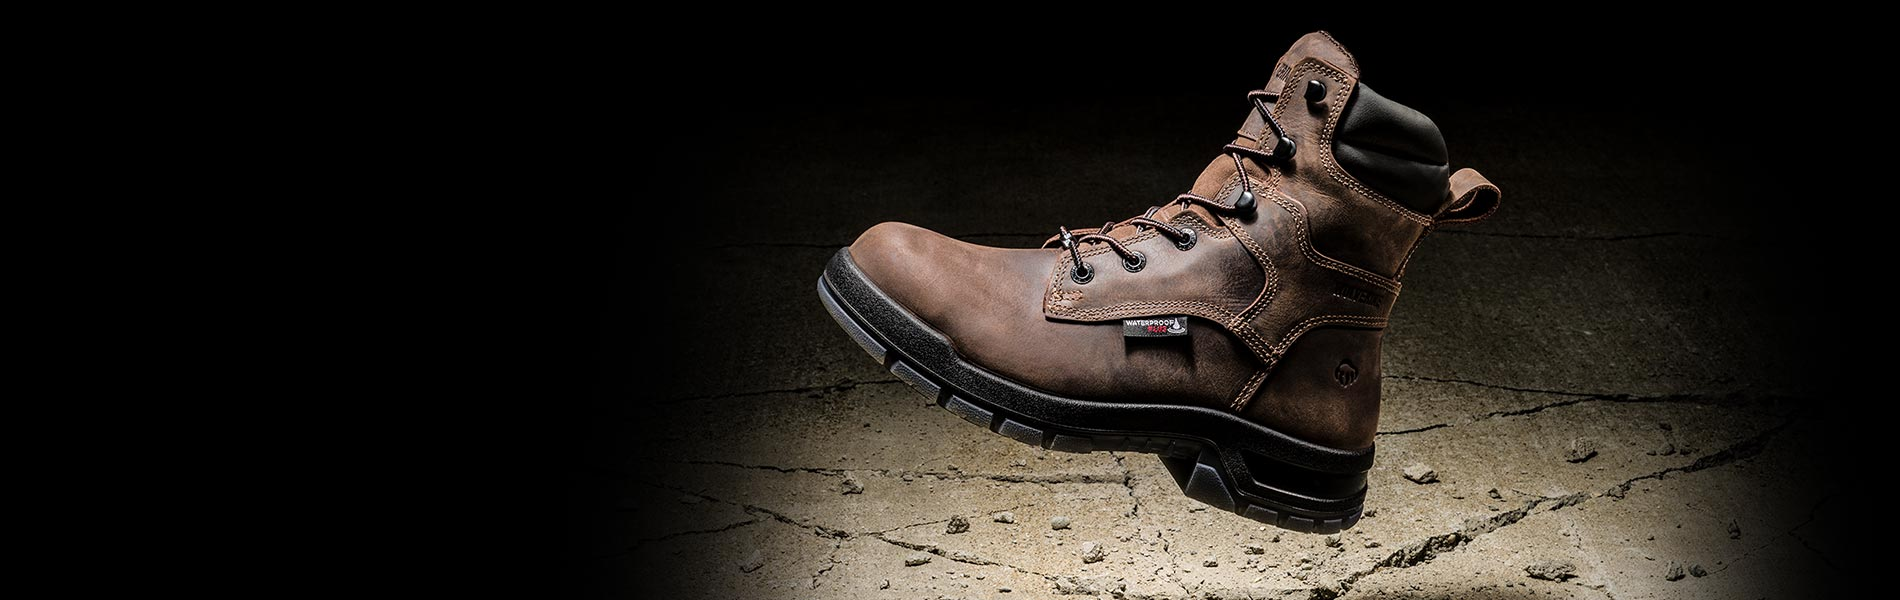 New wolverine USA w191050 Ramparts 8 inch Carbonmax brown waterproof work boot